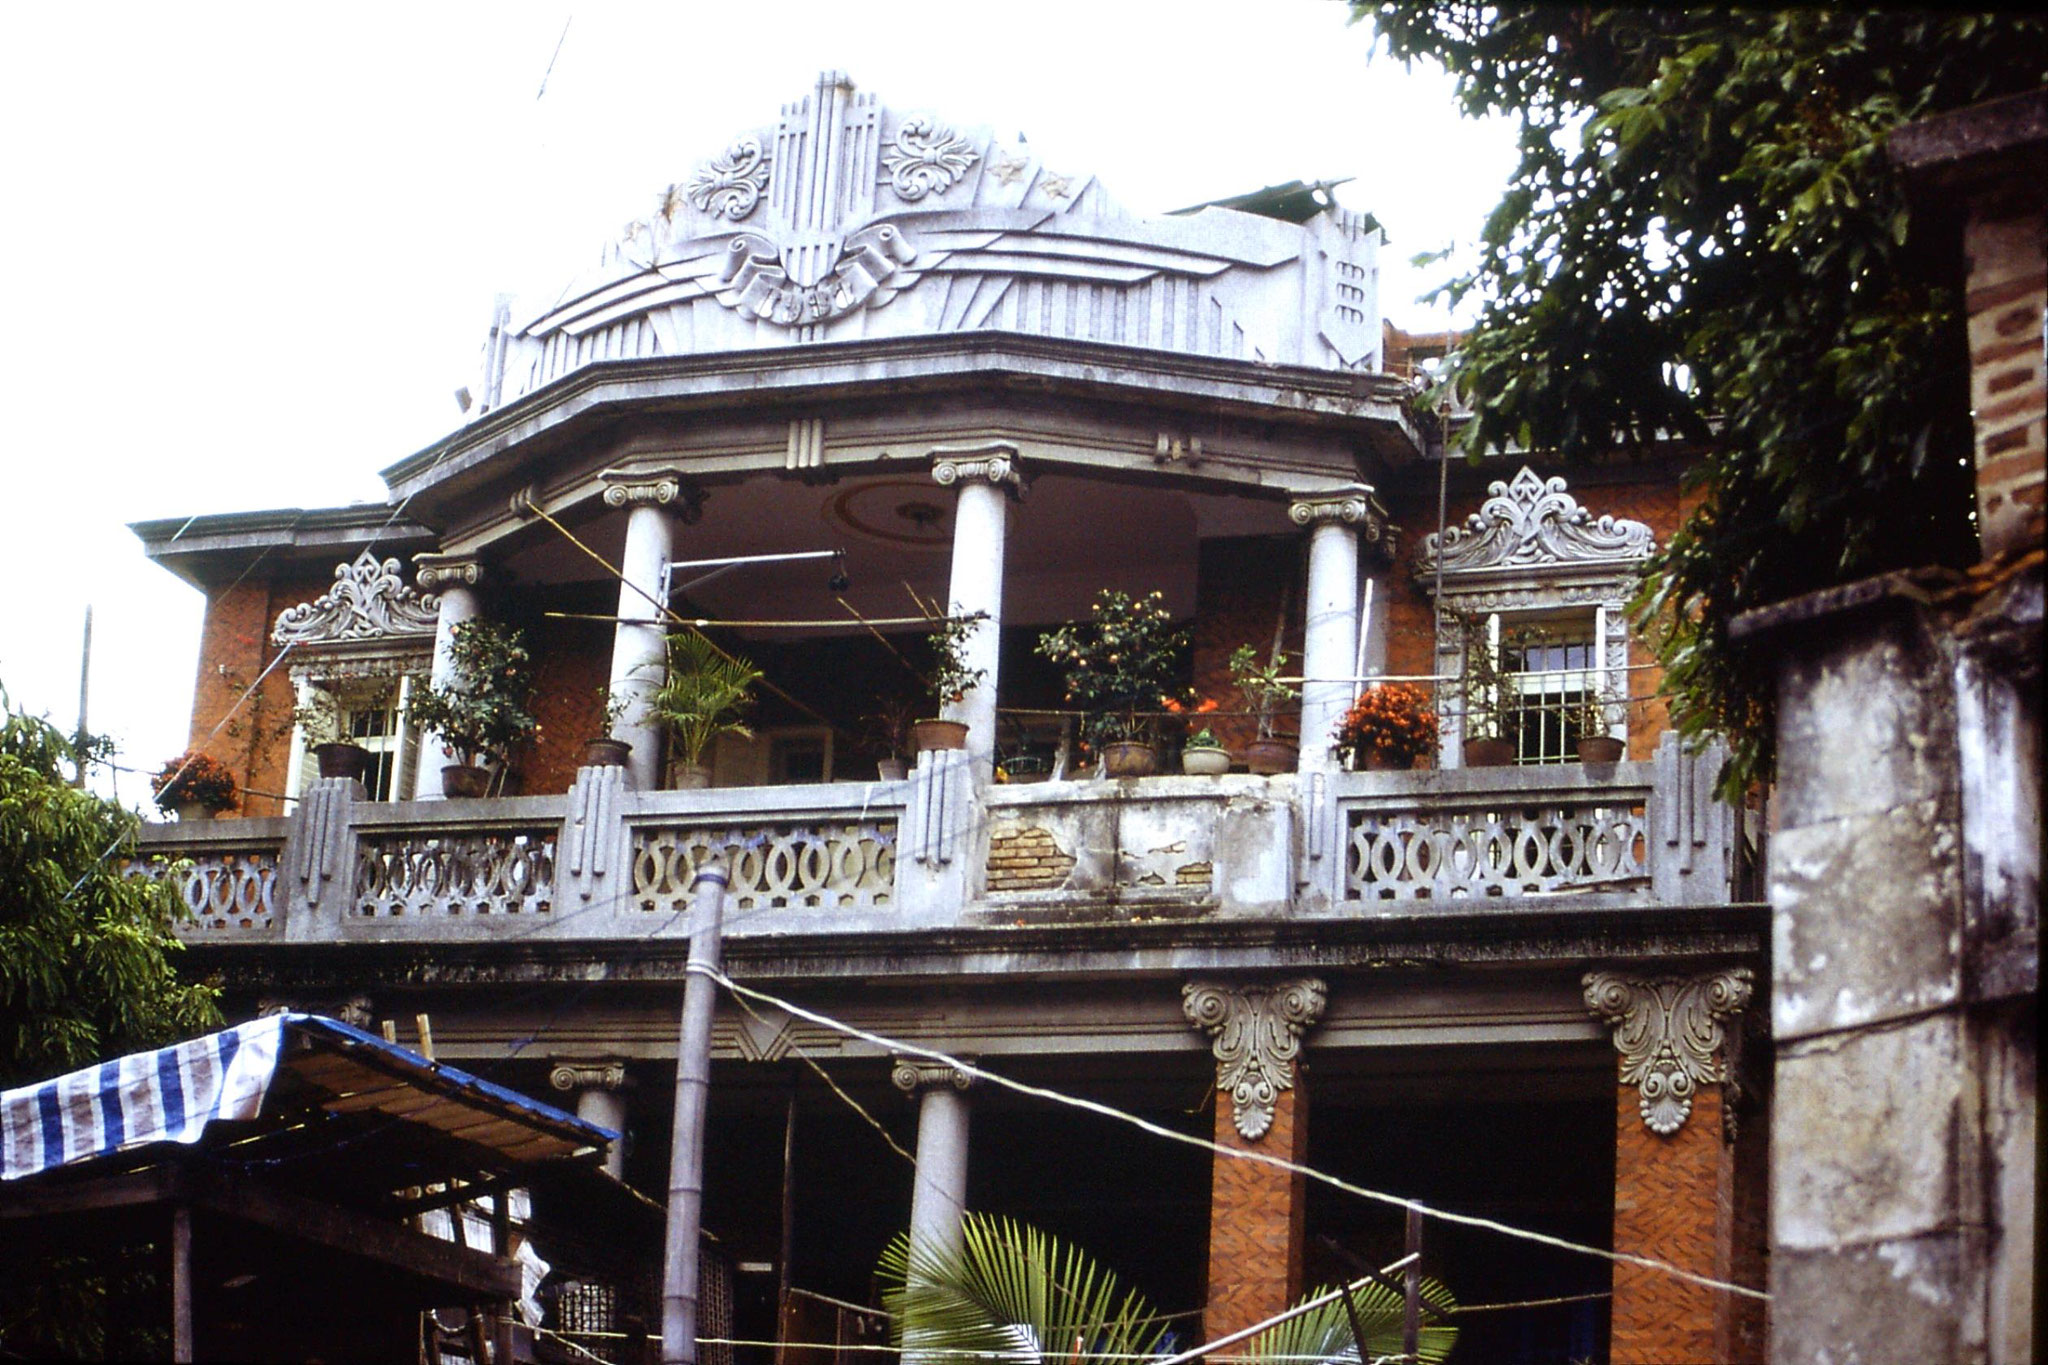 30/3/1989: 15: mansion at Gulanggu